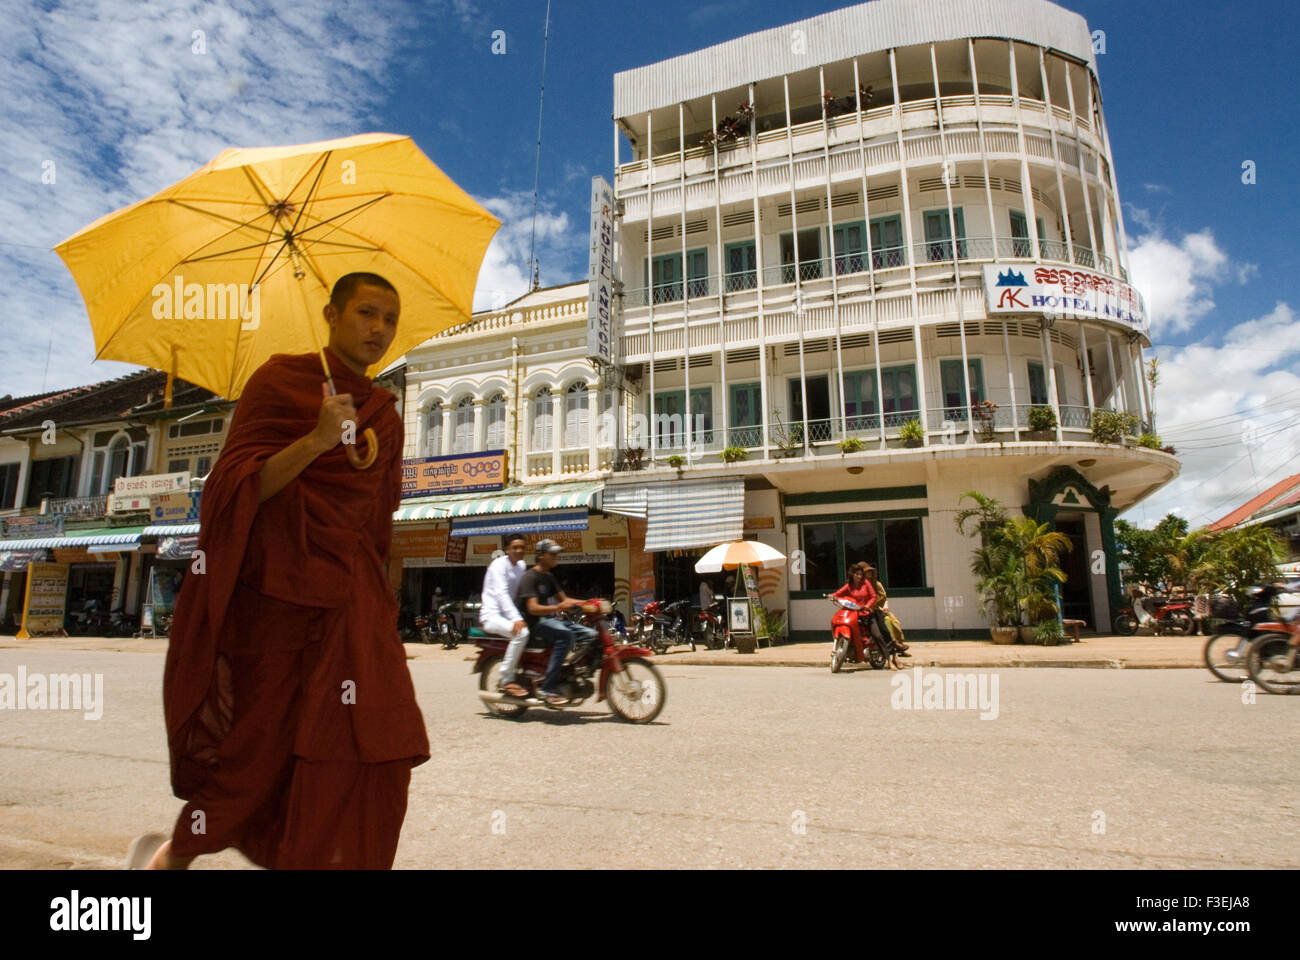 Buddhist monk walking down the streets of Battambang. Battambang is Cambodia's second-largest city and the capital - Stock Image